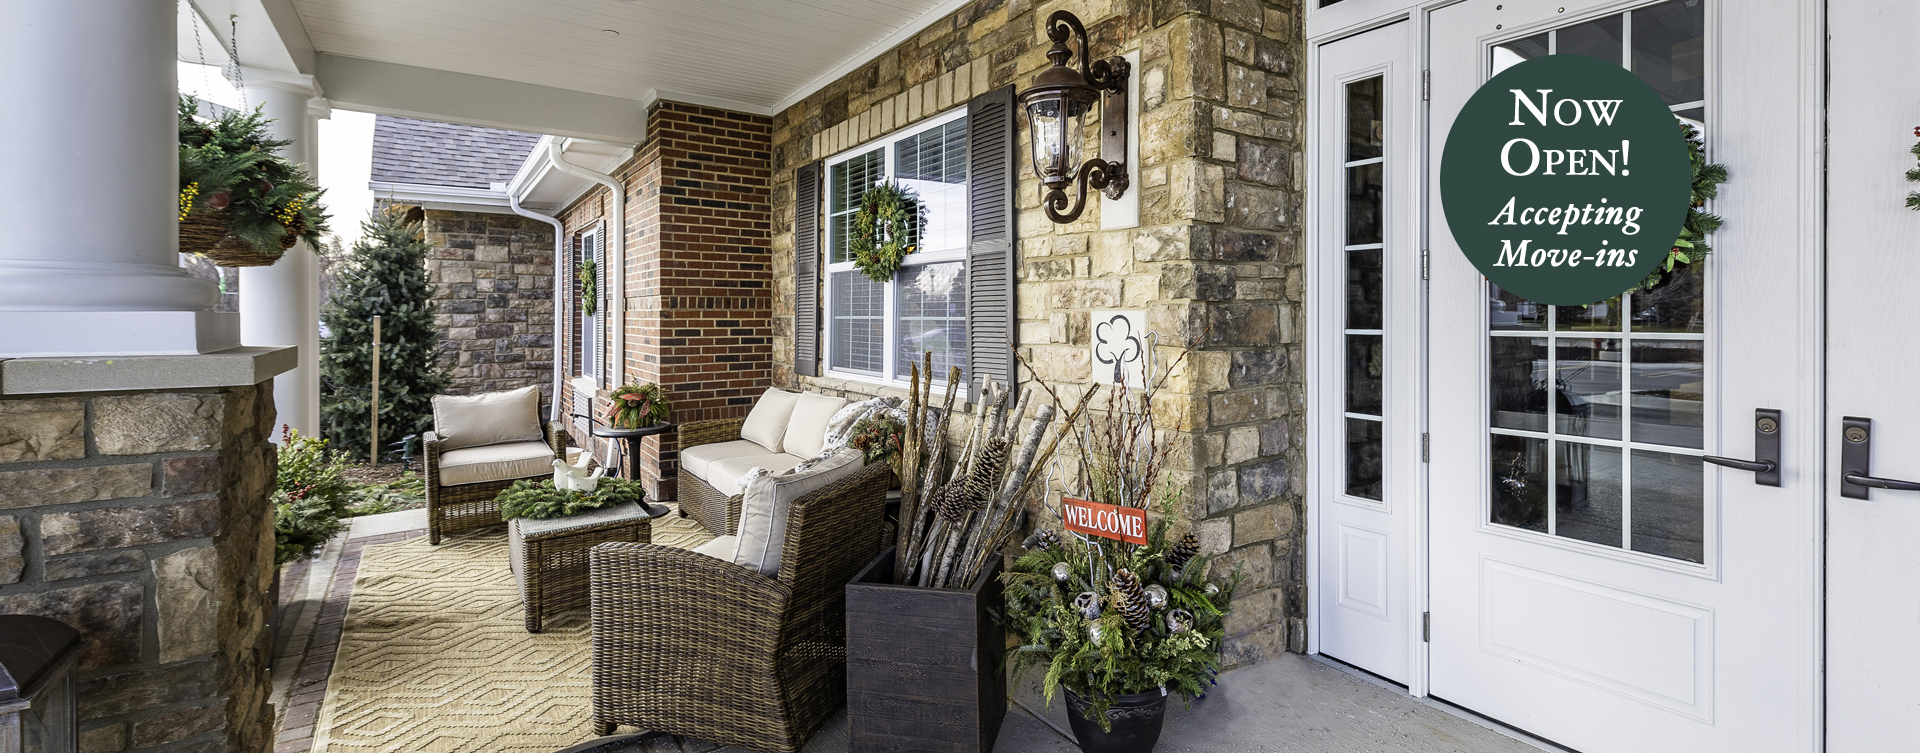 Relax in your favorite chair on the porch at Bickford of Canton